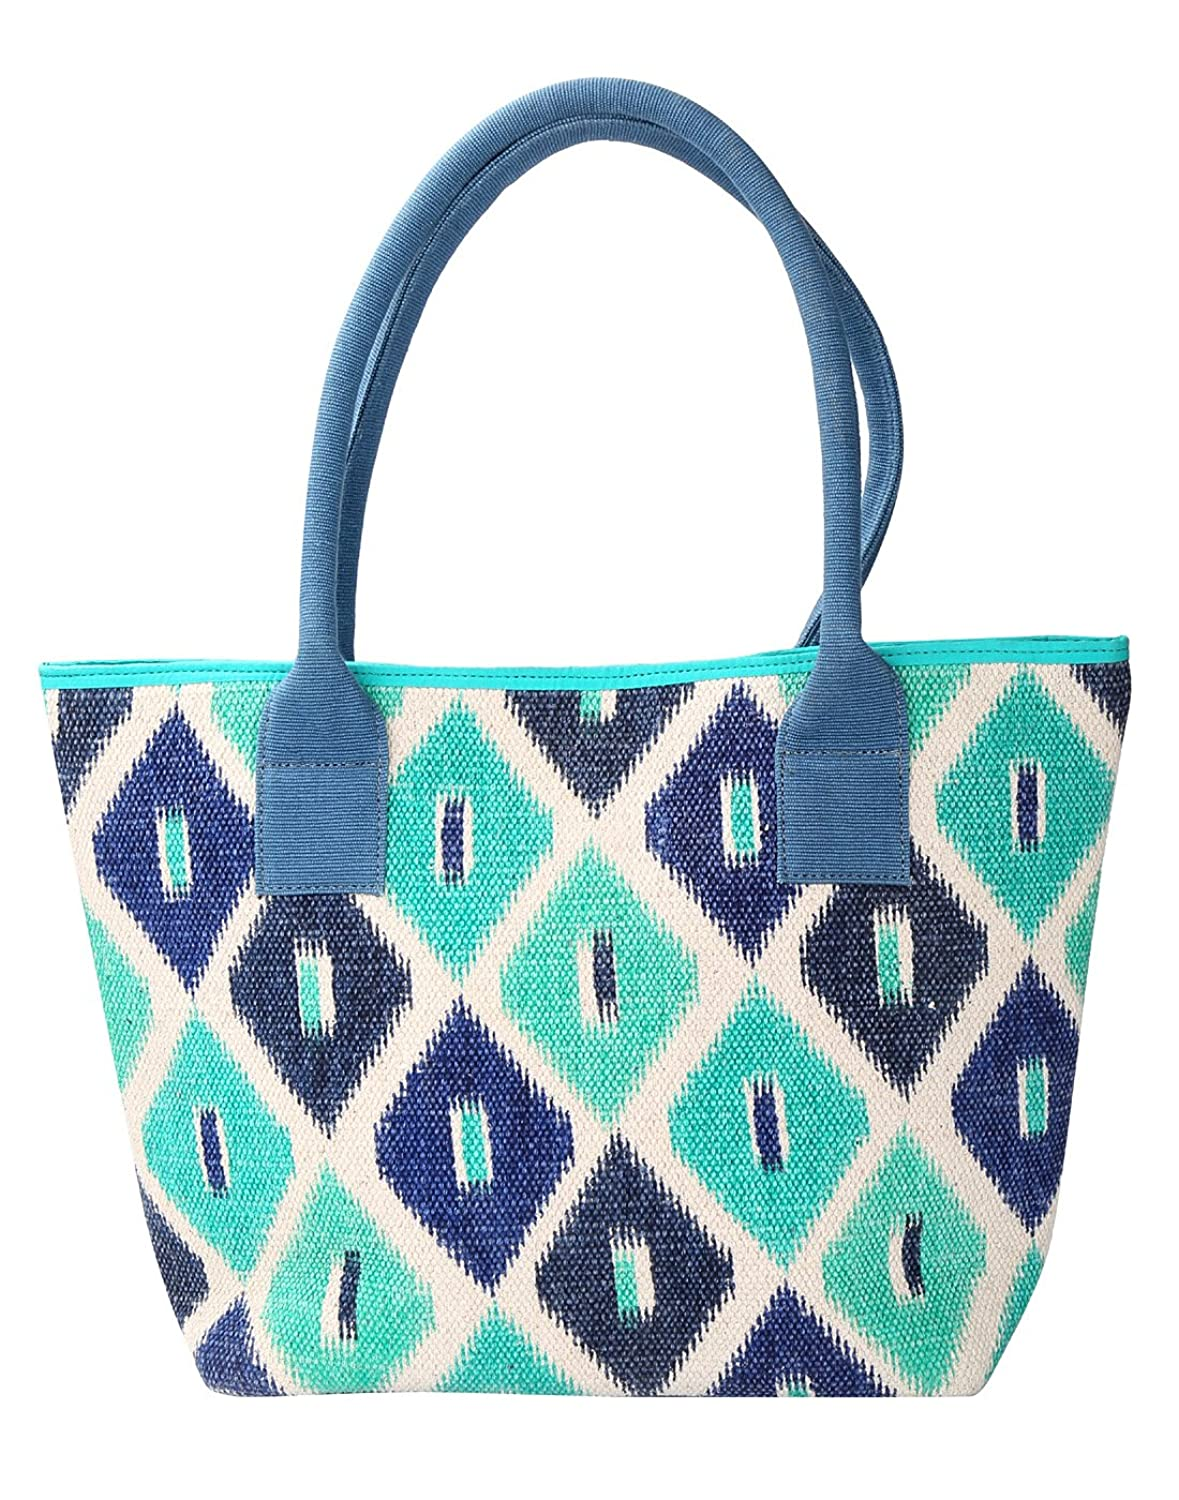 Attractive Cotton & Durrie Green Tote Bag Quatrefoil Hand Block Printed